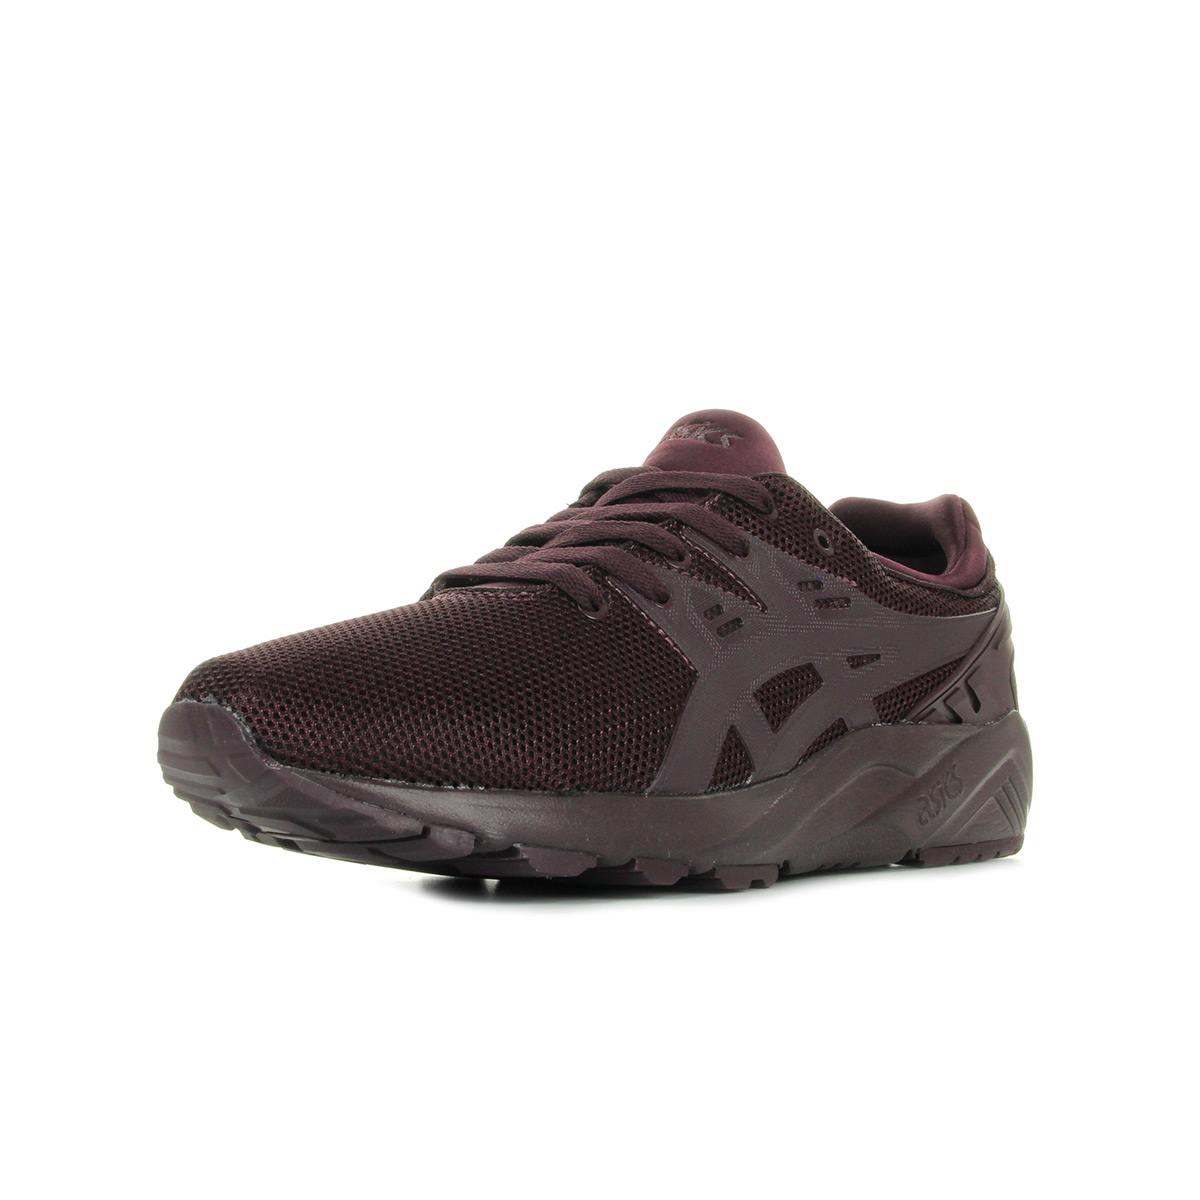 Chaussures Baskets Asics homme Gel Kayano Trainer EVO Rioja Red taille Violet